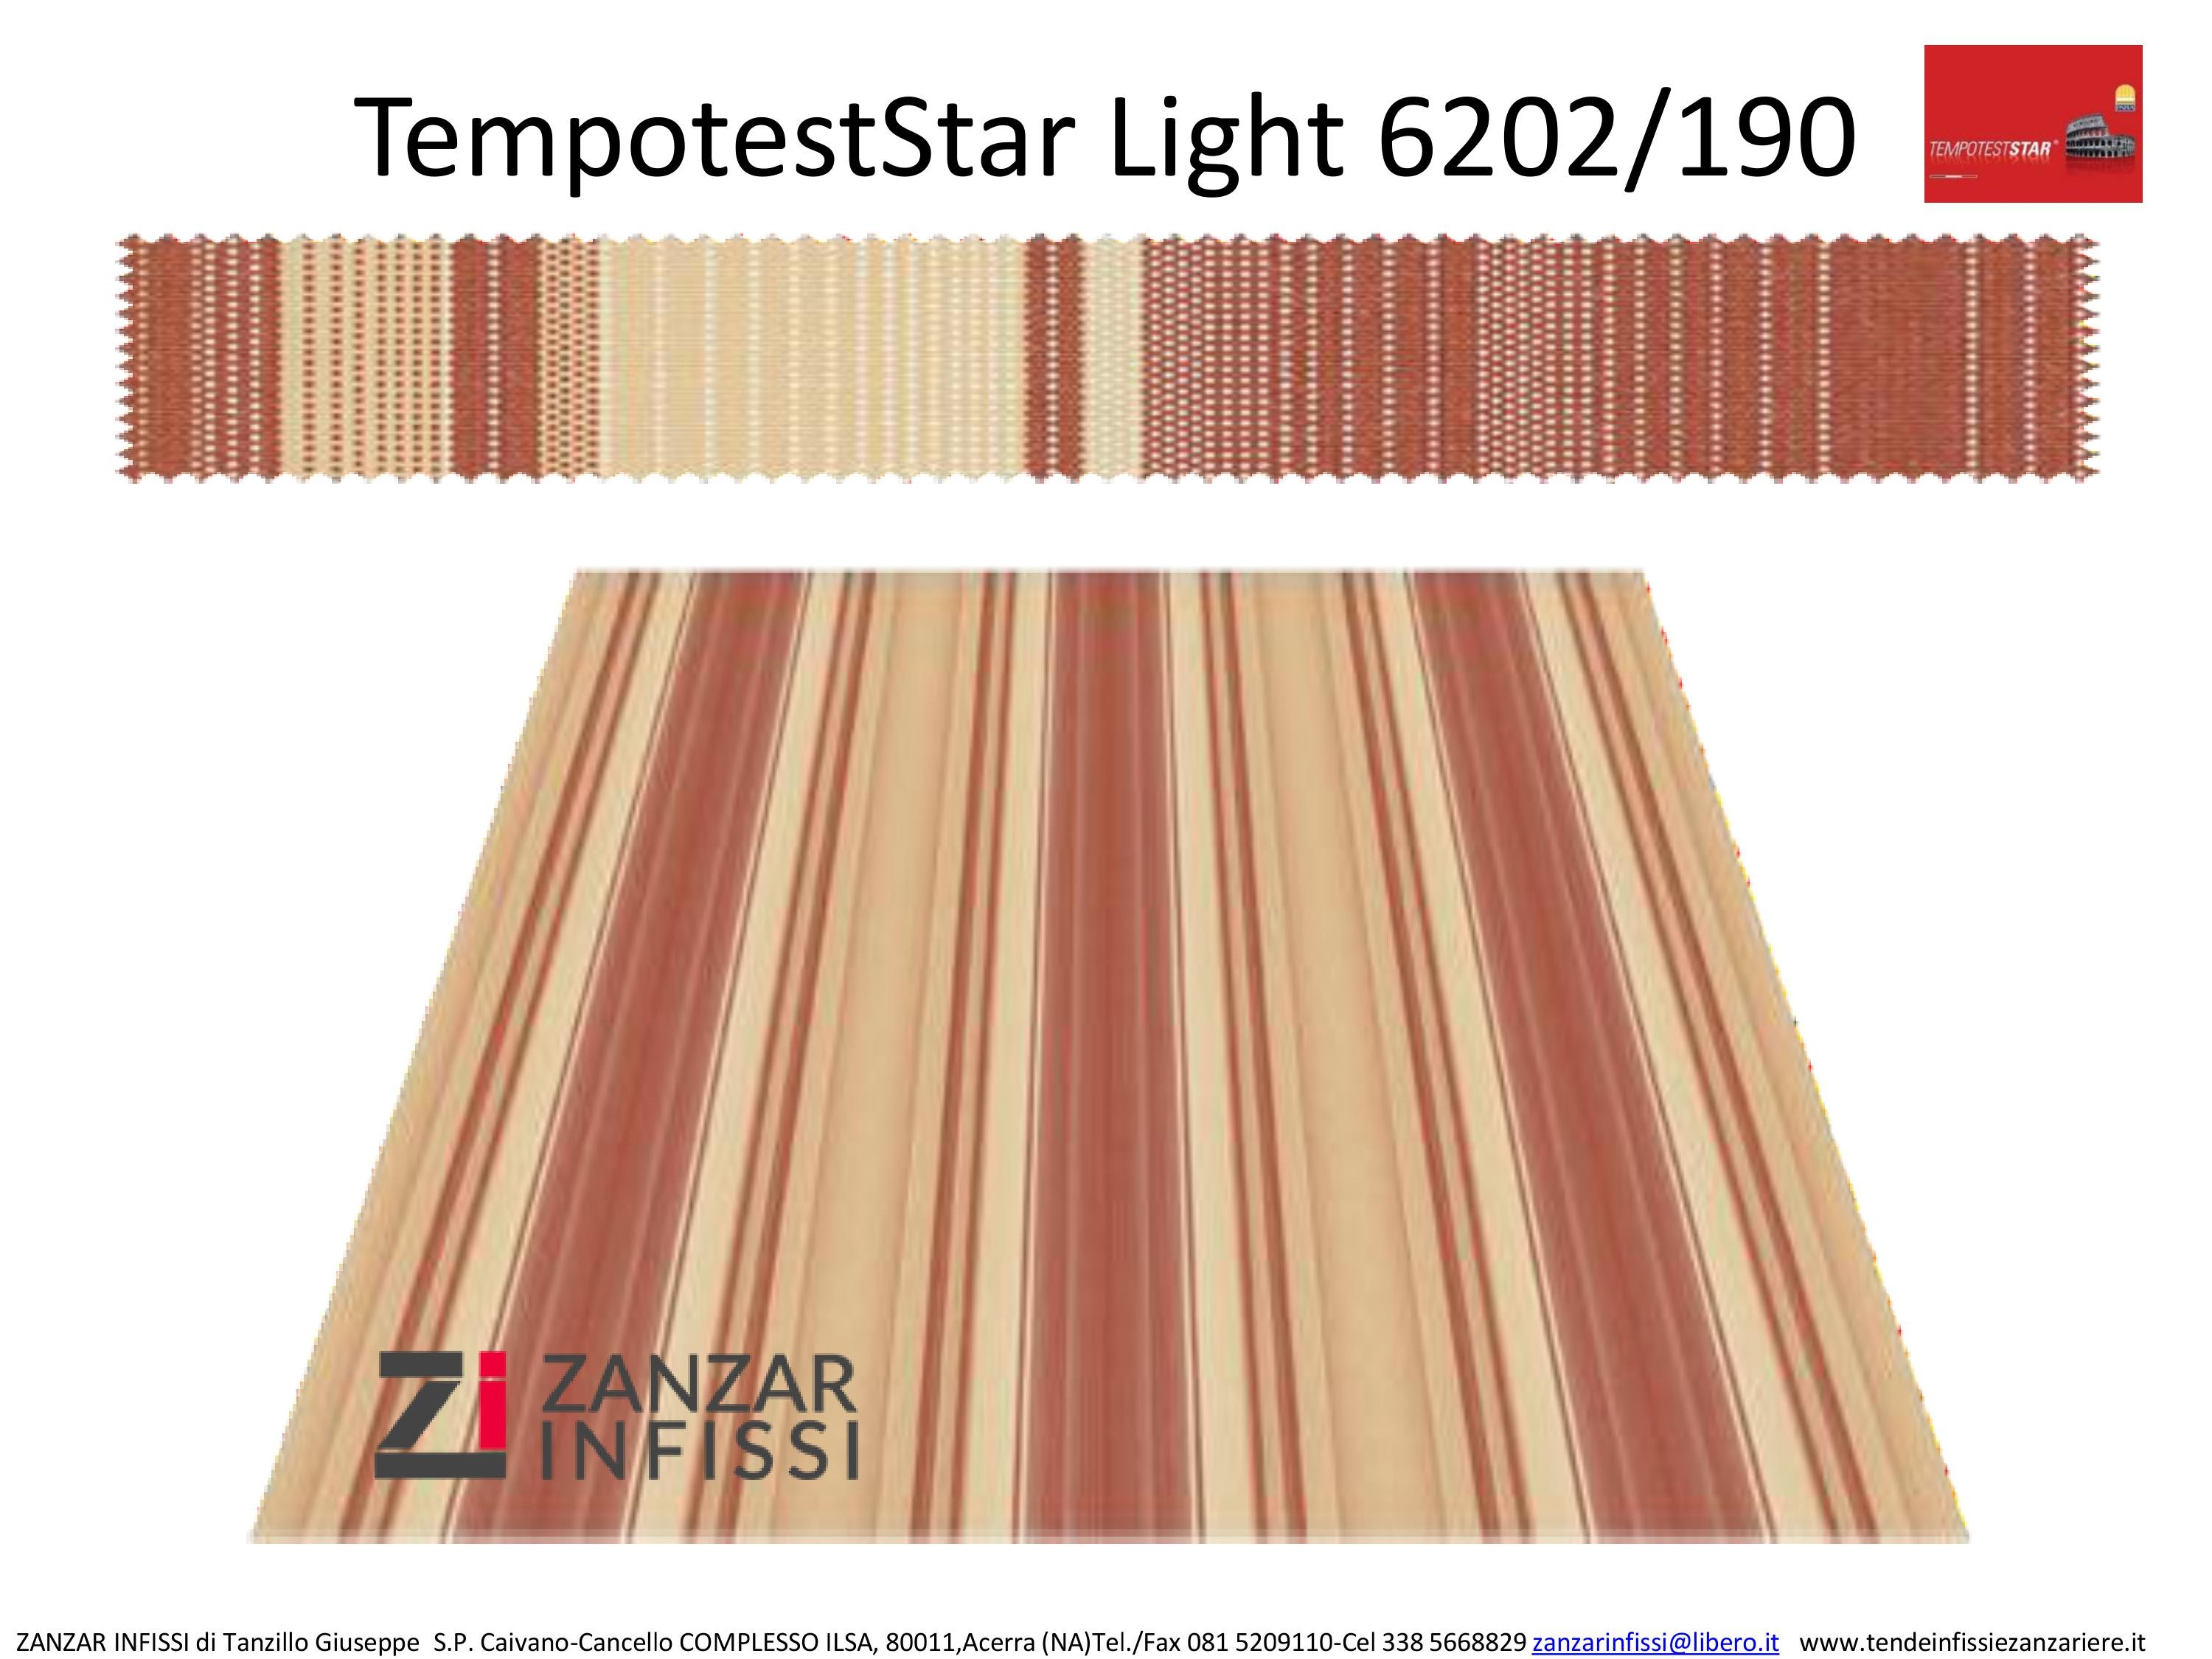 Tempotest star light 6202/190